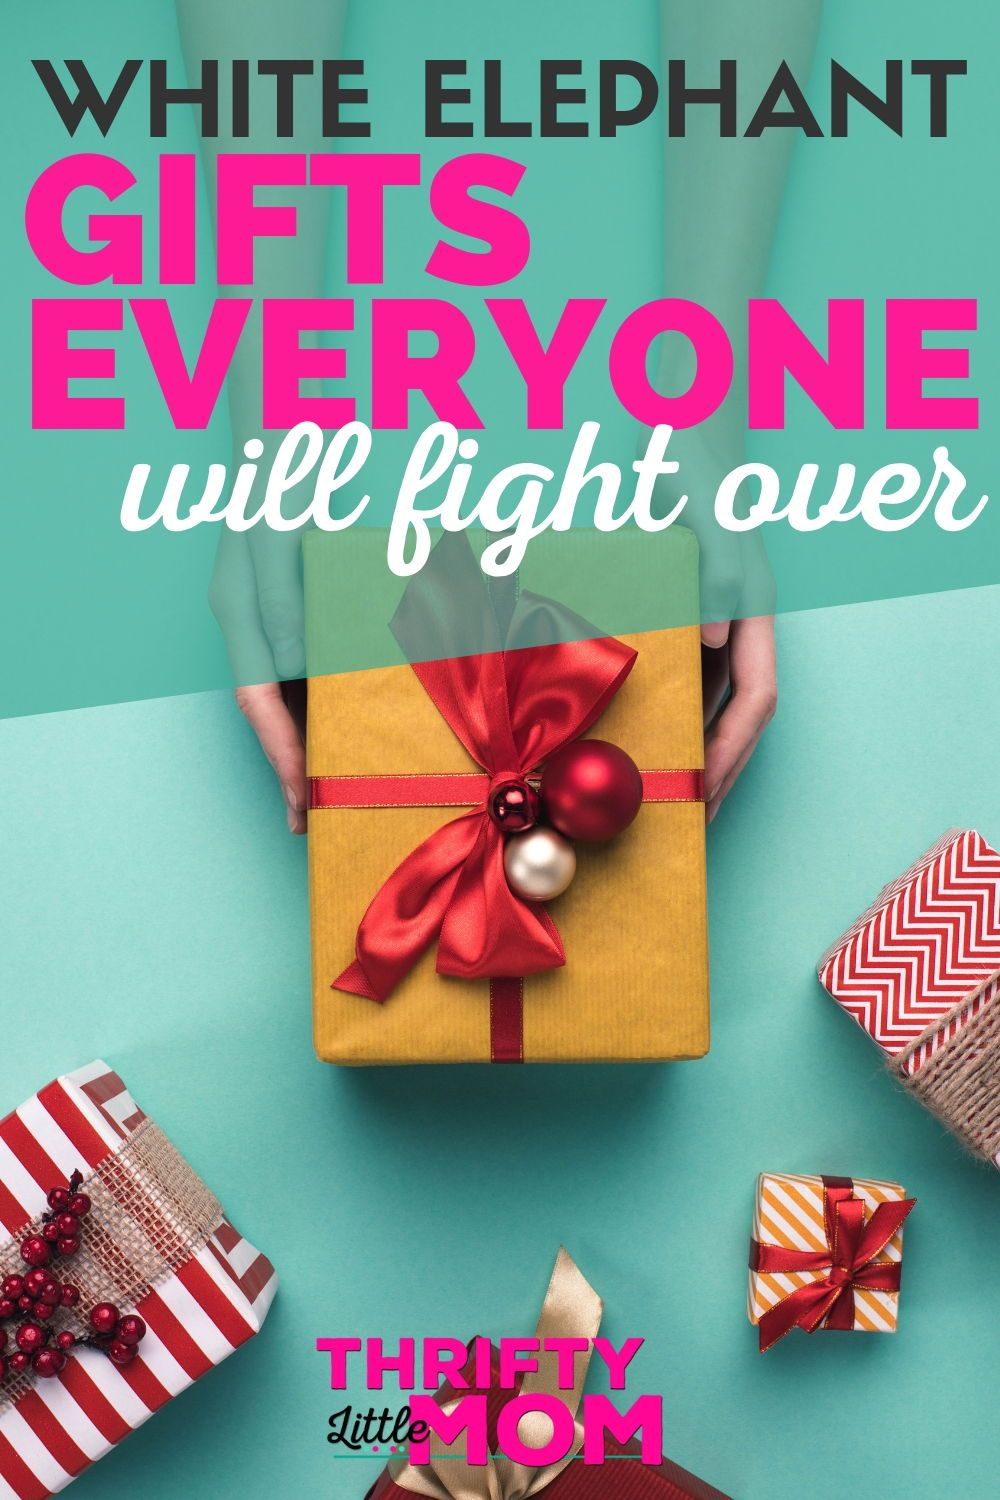 White Elephant Gifts Worth Fighting For | Elephant gifts ...